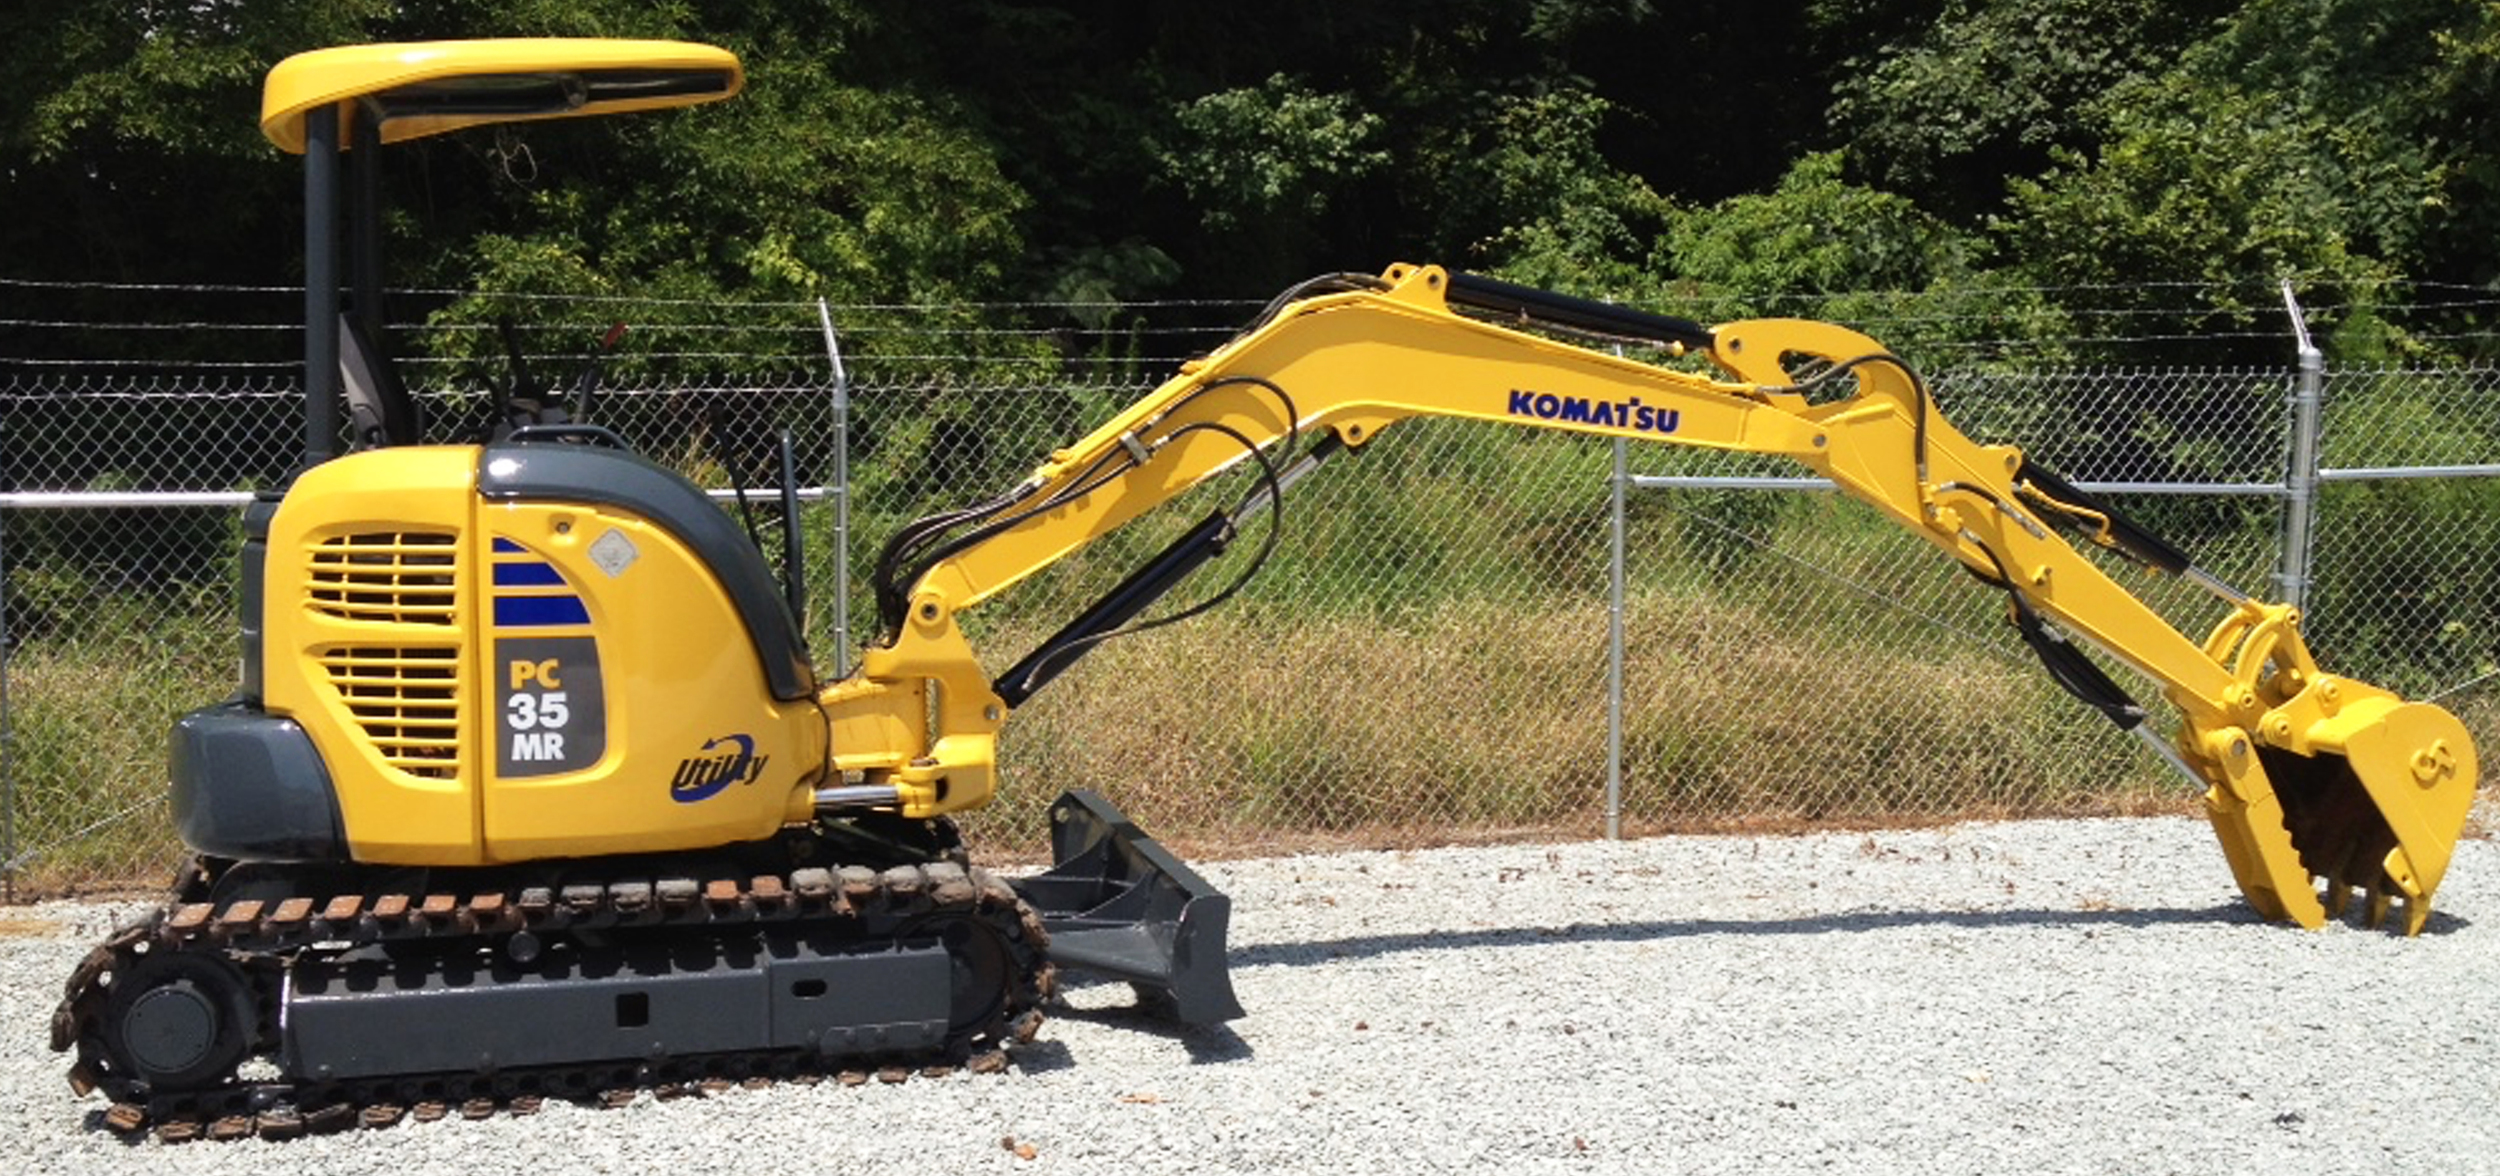 HEAVY EQUIPMENT PAINTING We are quickly becoming one of the best paint and body shops in North Carolina for servicing heavy equipment. Whether you have Transfer Trucks, Trailers, Dump Trucks, Tractors, BullDozers, Fire Trucks, Buses, Horse Trailers, RVs, and of course Boats.